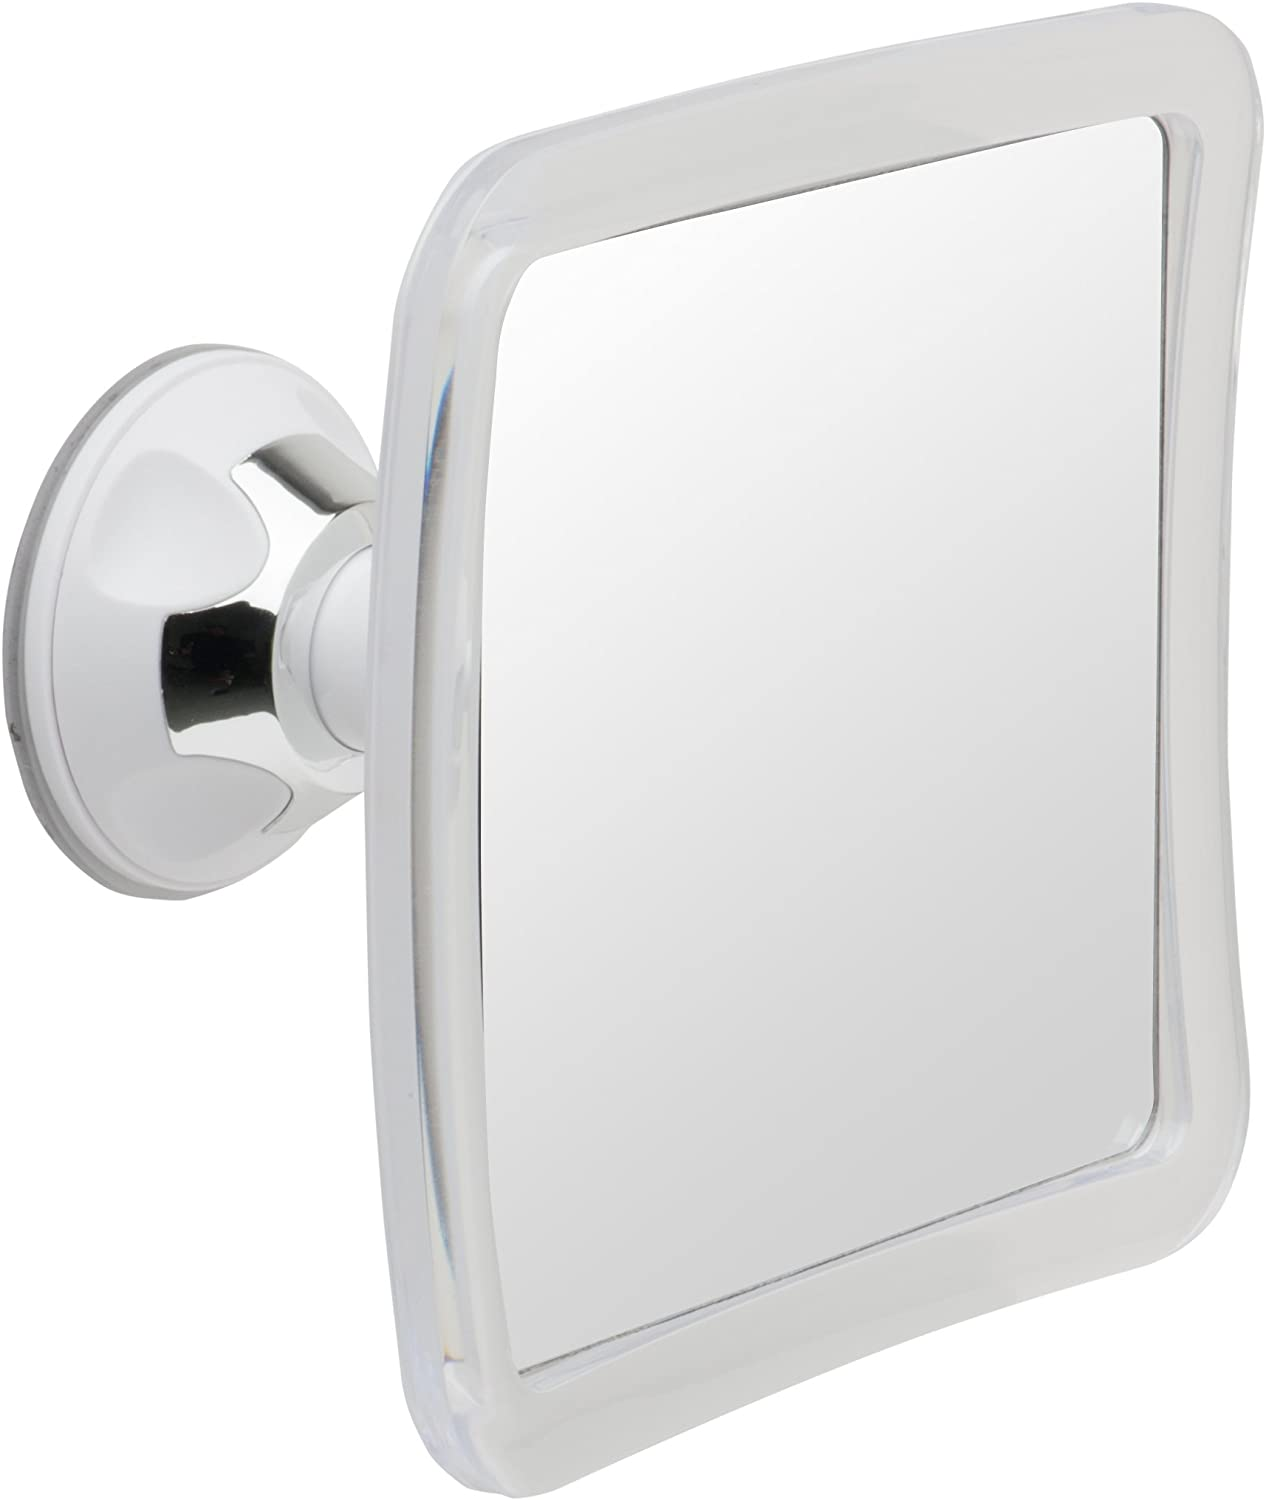 Top 10 Best Fogless Shower Mirrors Reviews in 2020 5